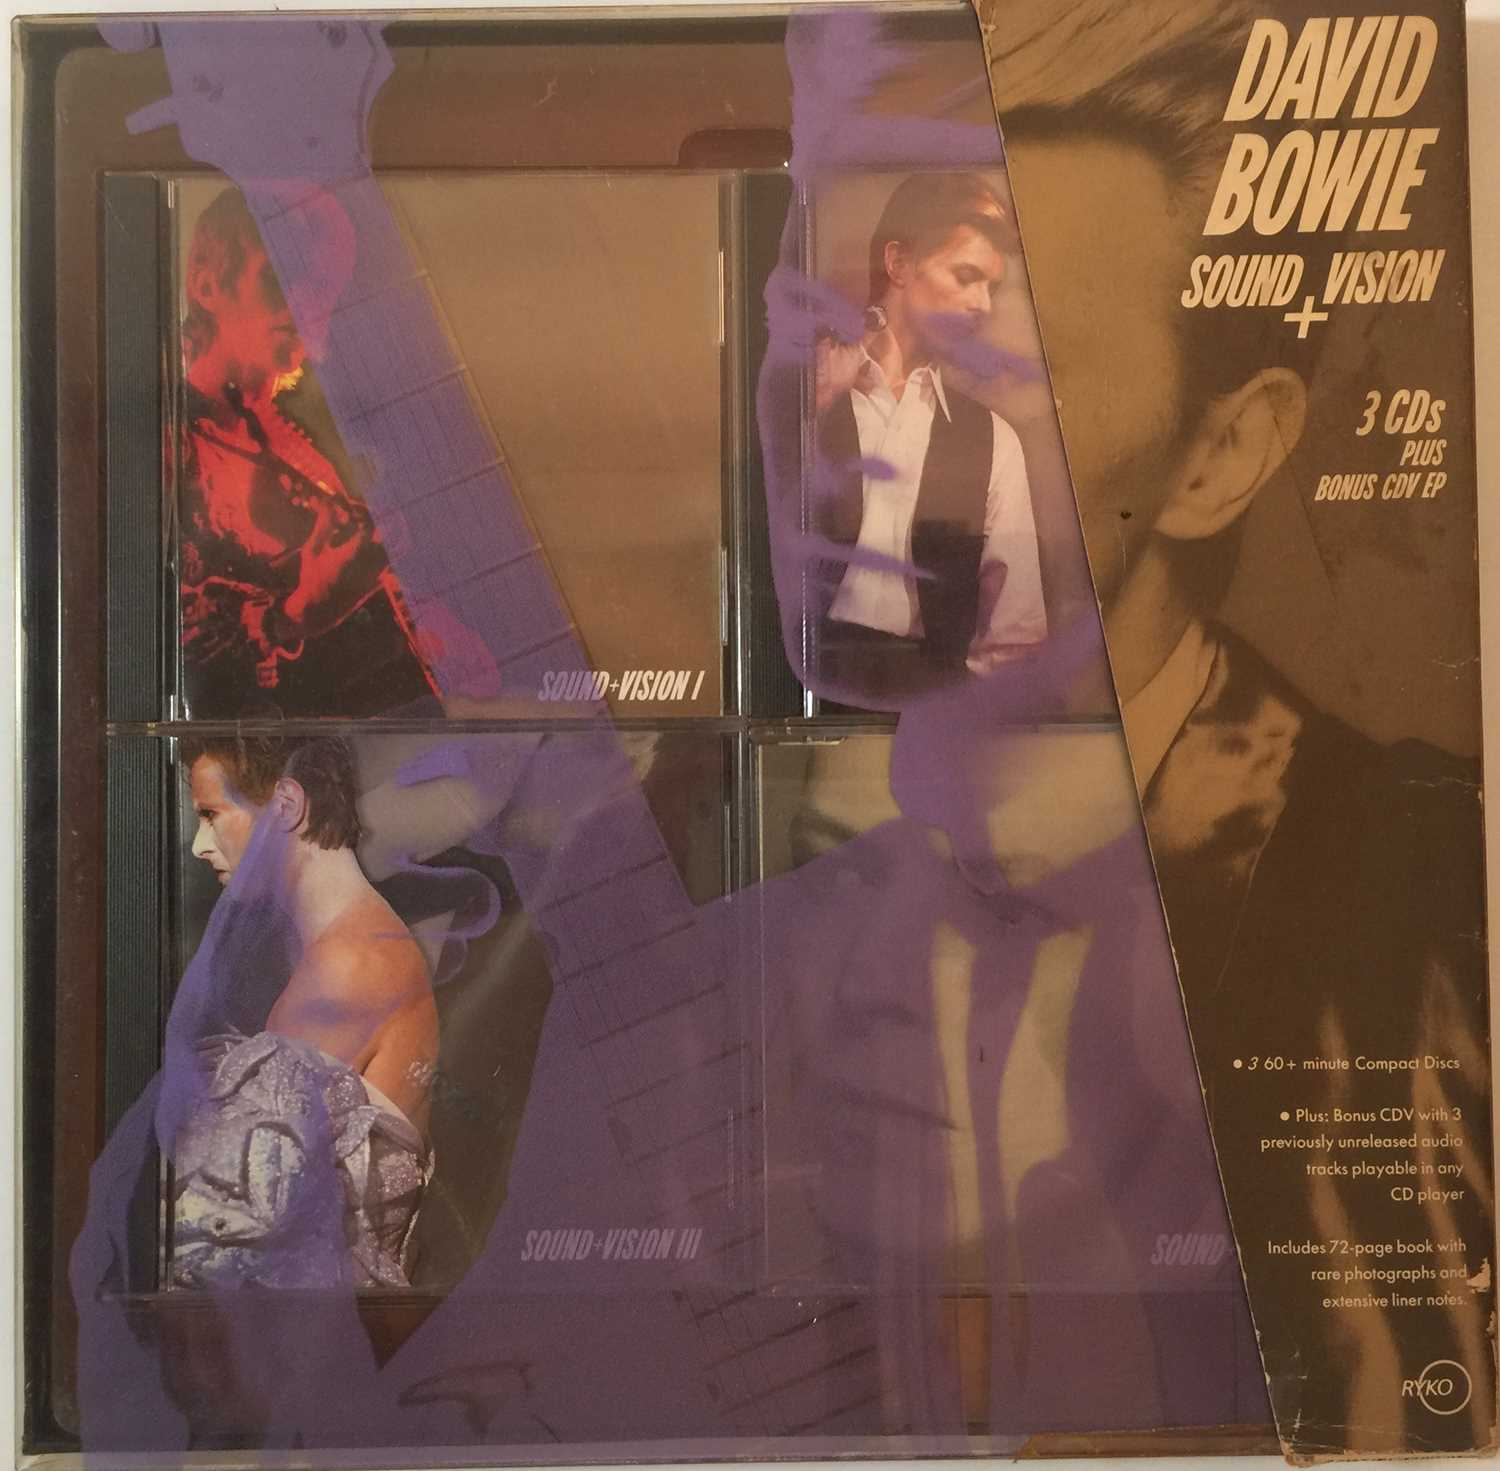 DAVID BOWIE - LIMITED EDITION CD BOX SET RELEASES - Image 5 of 8